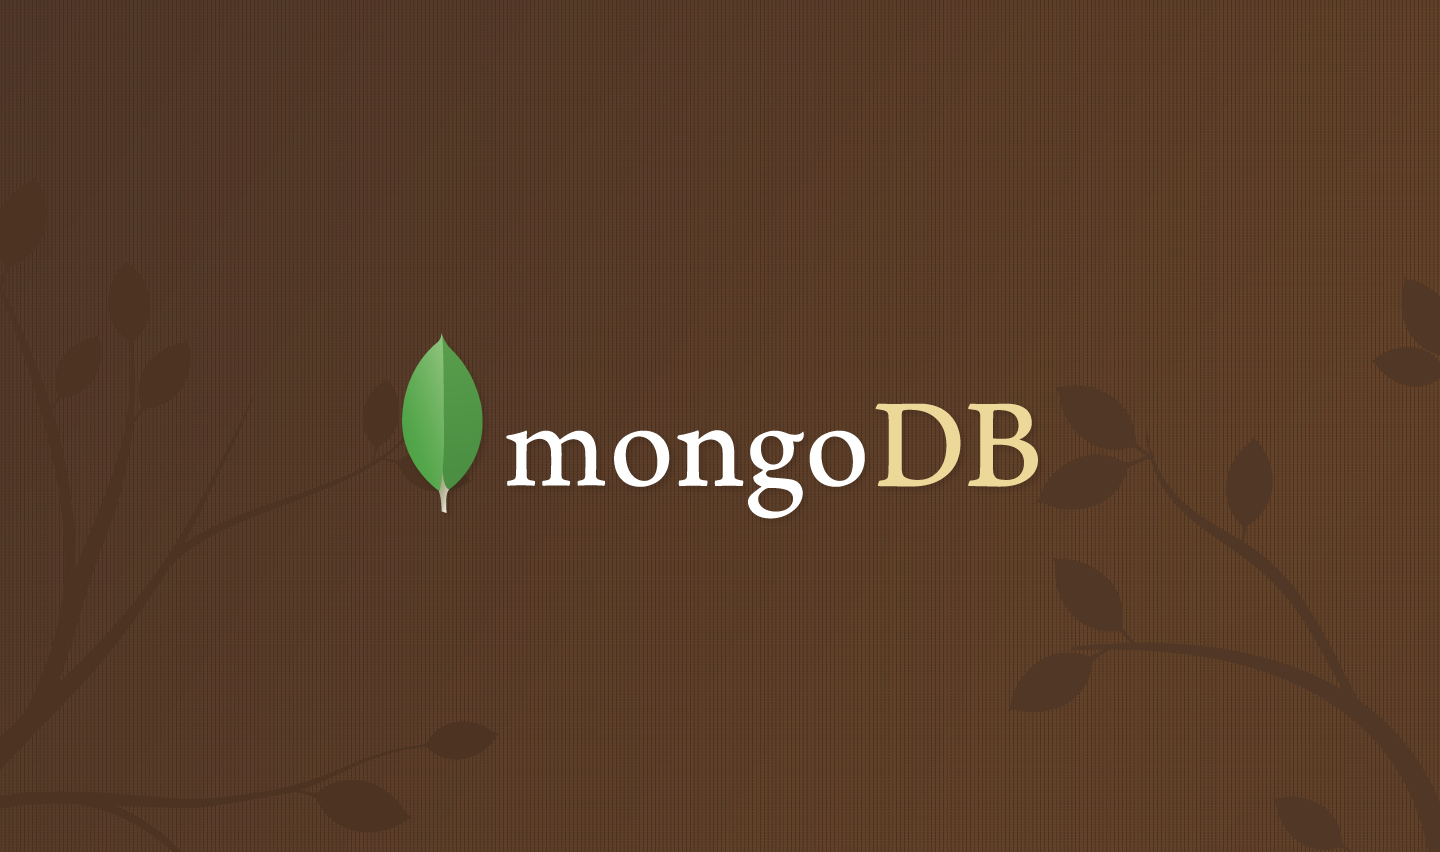 Installer MongoDB et authentification sur debian